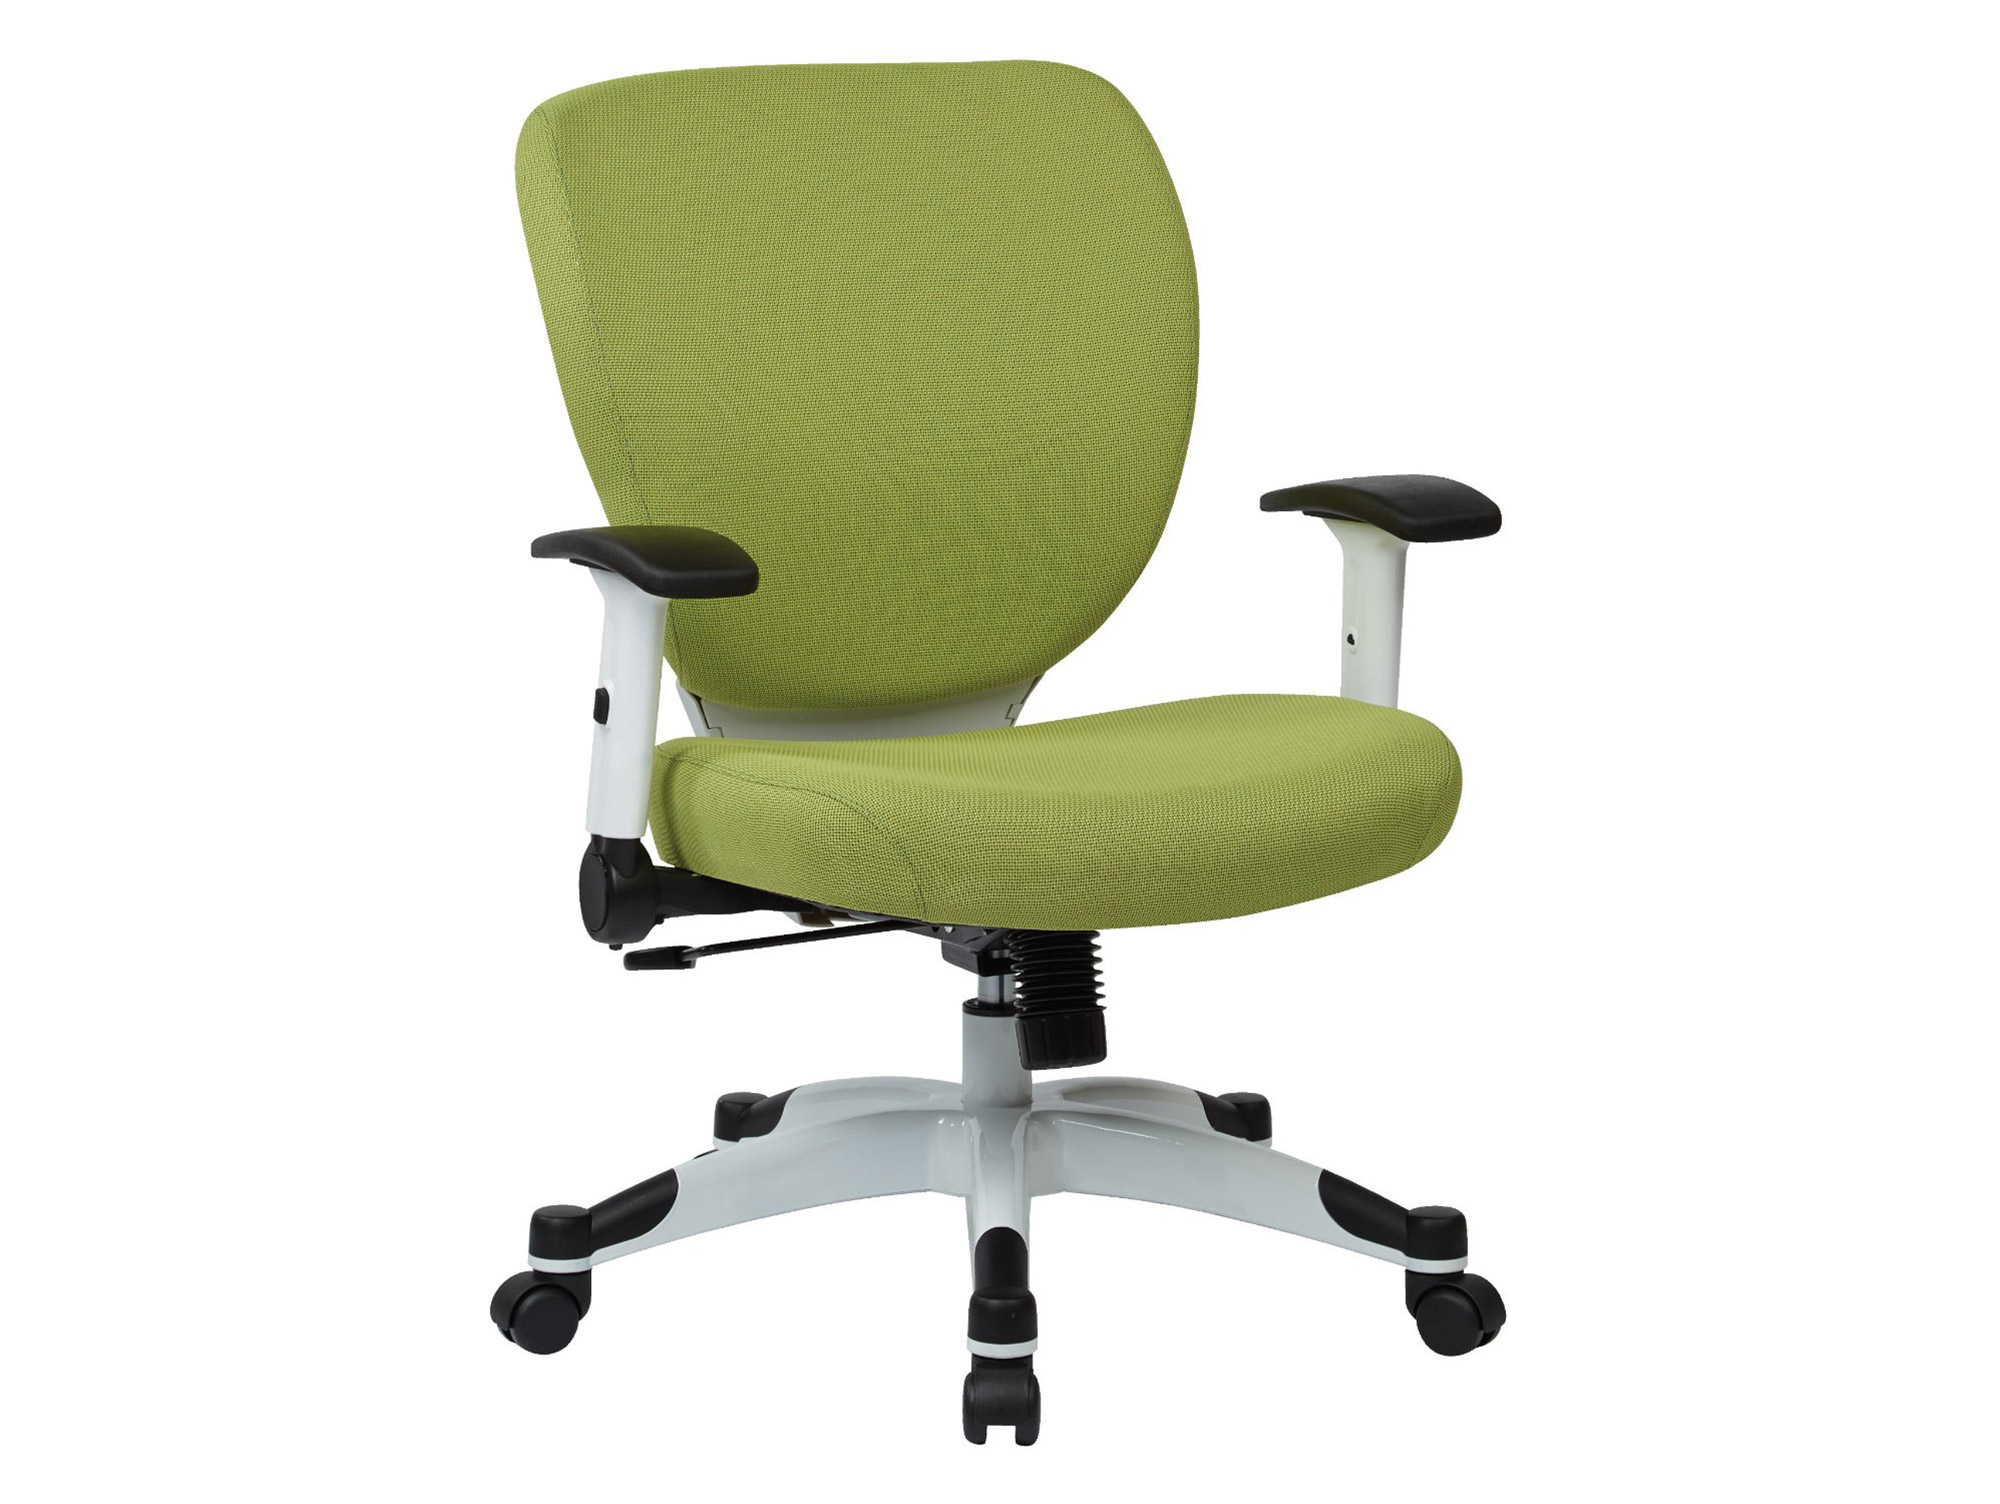 Blue Desk Chairs Blue Desk Chair Office Task Chairs Chairs For Office